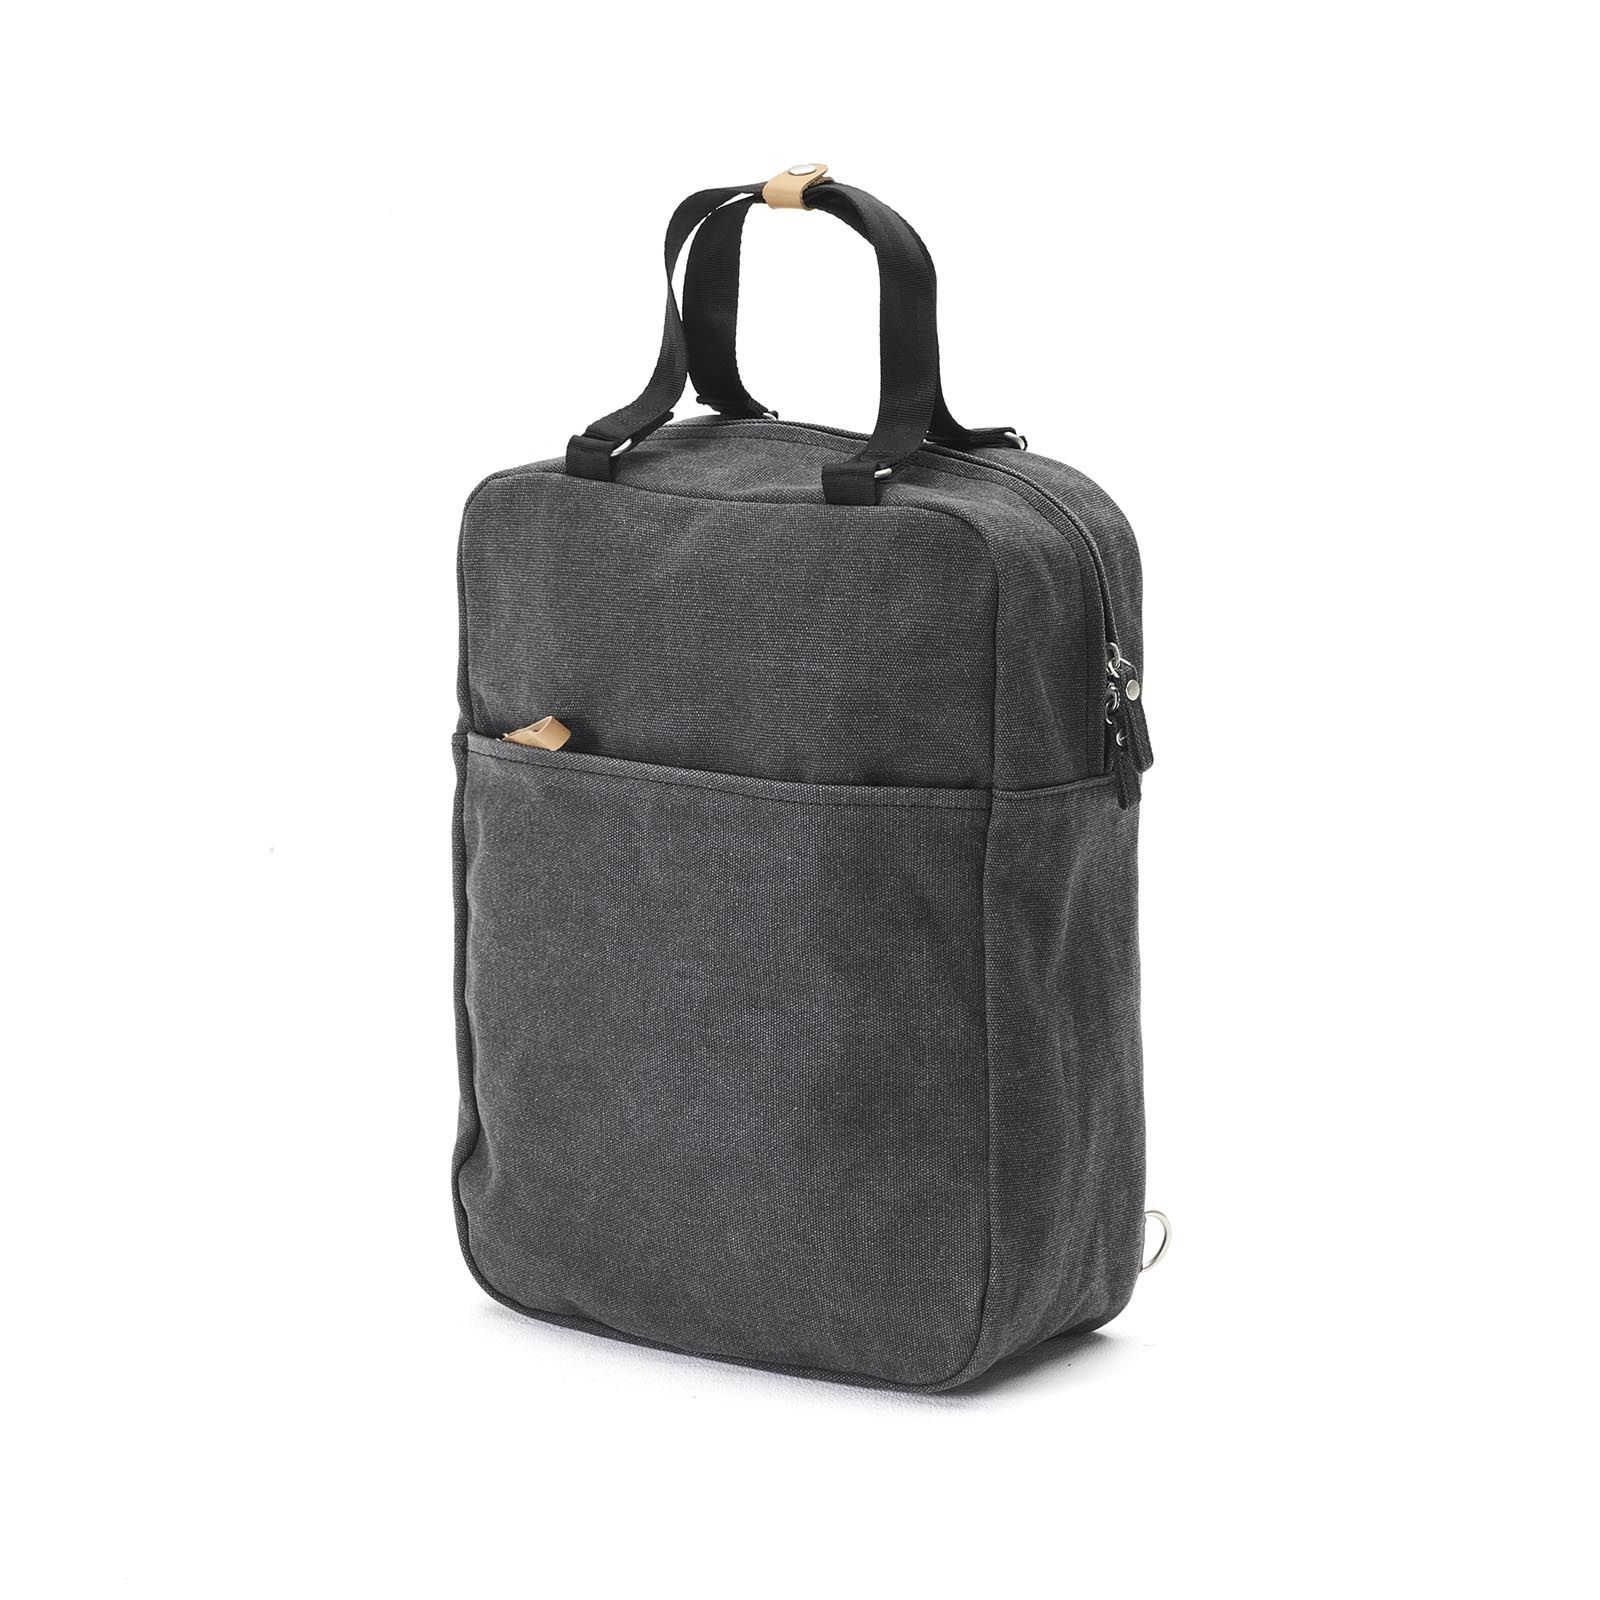 Simple Pack - Washed Black